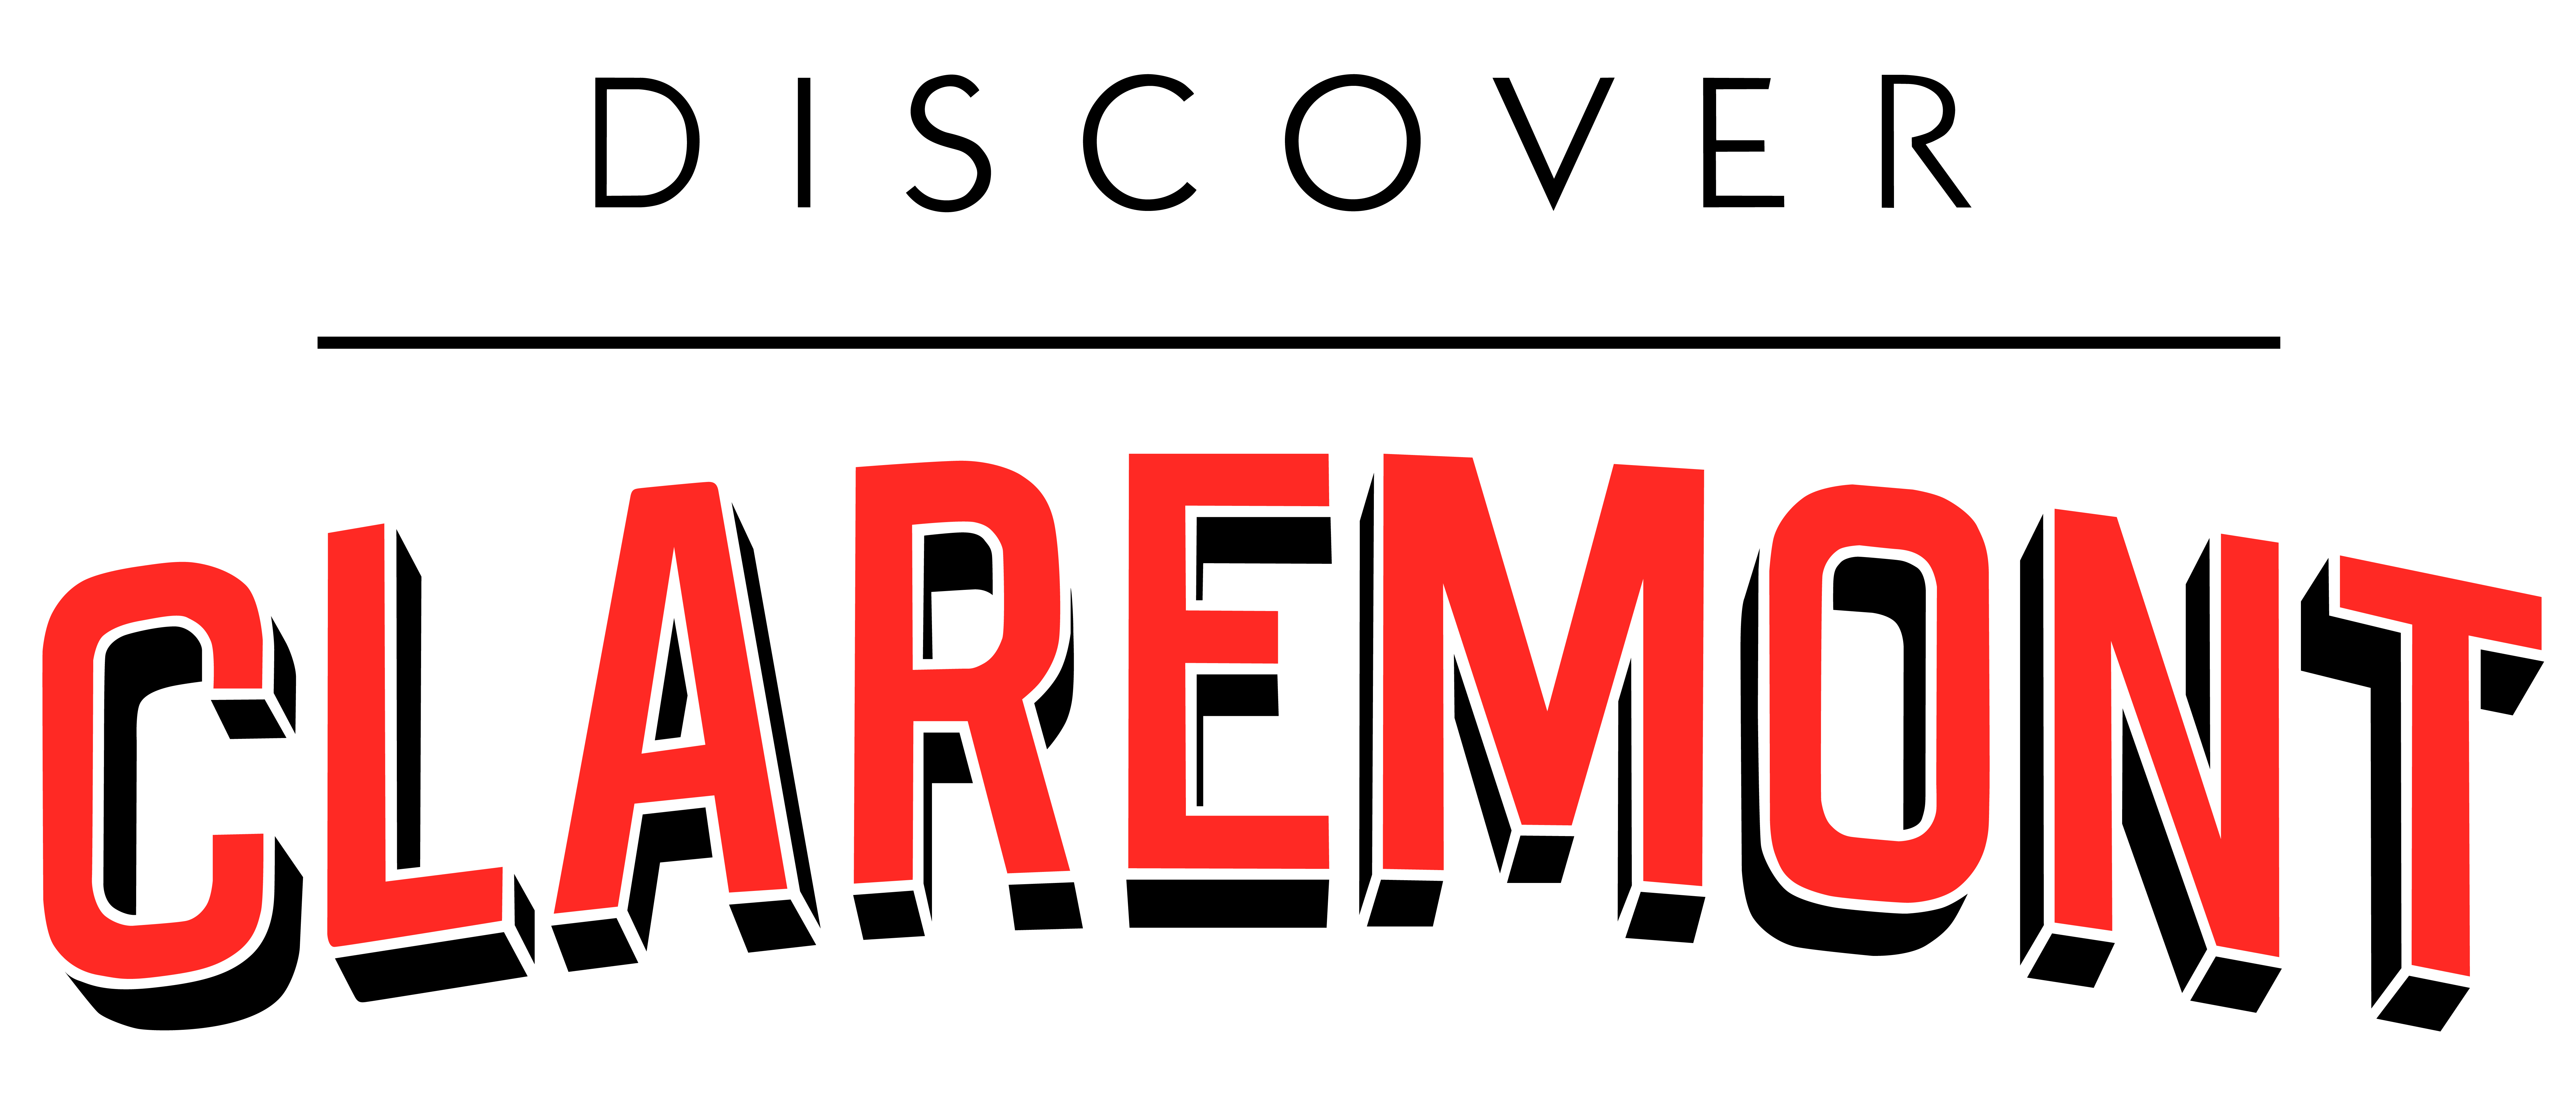 Discover Claremont